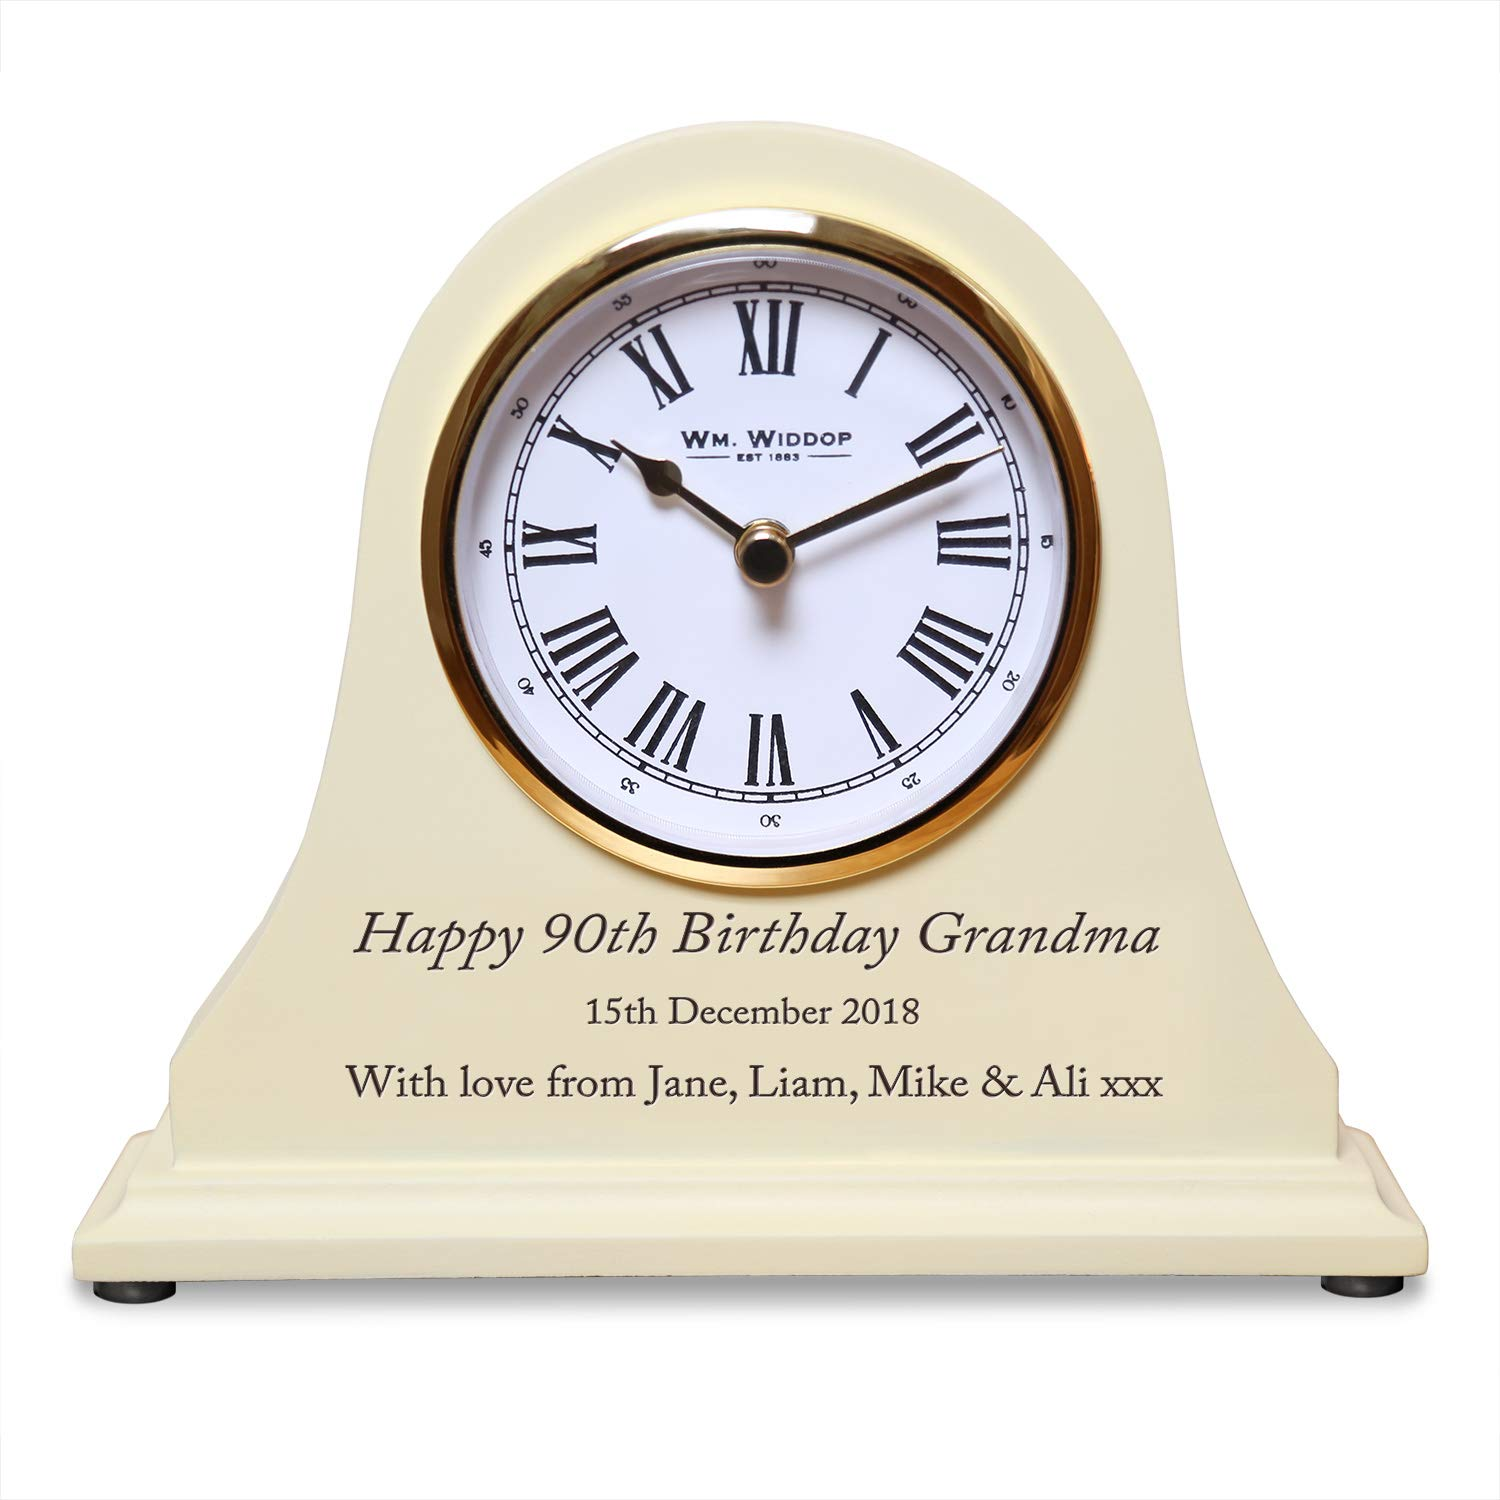 De Walden Girl's 90th Birthday Gift Engraved Wooden Clock 90 Years Gifts for Women Girls The Great Gifts Company